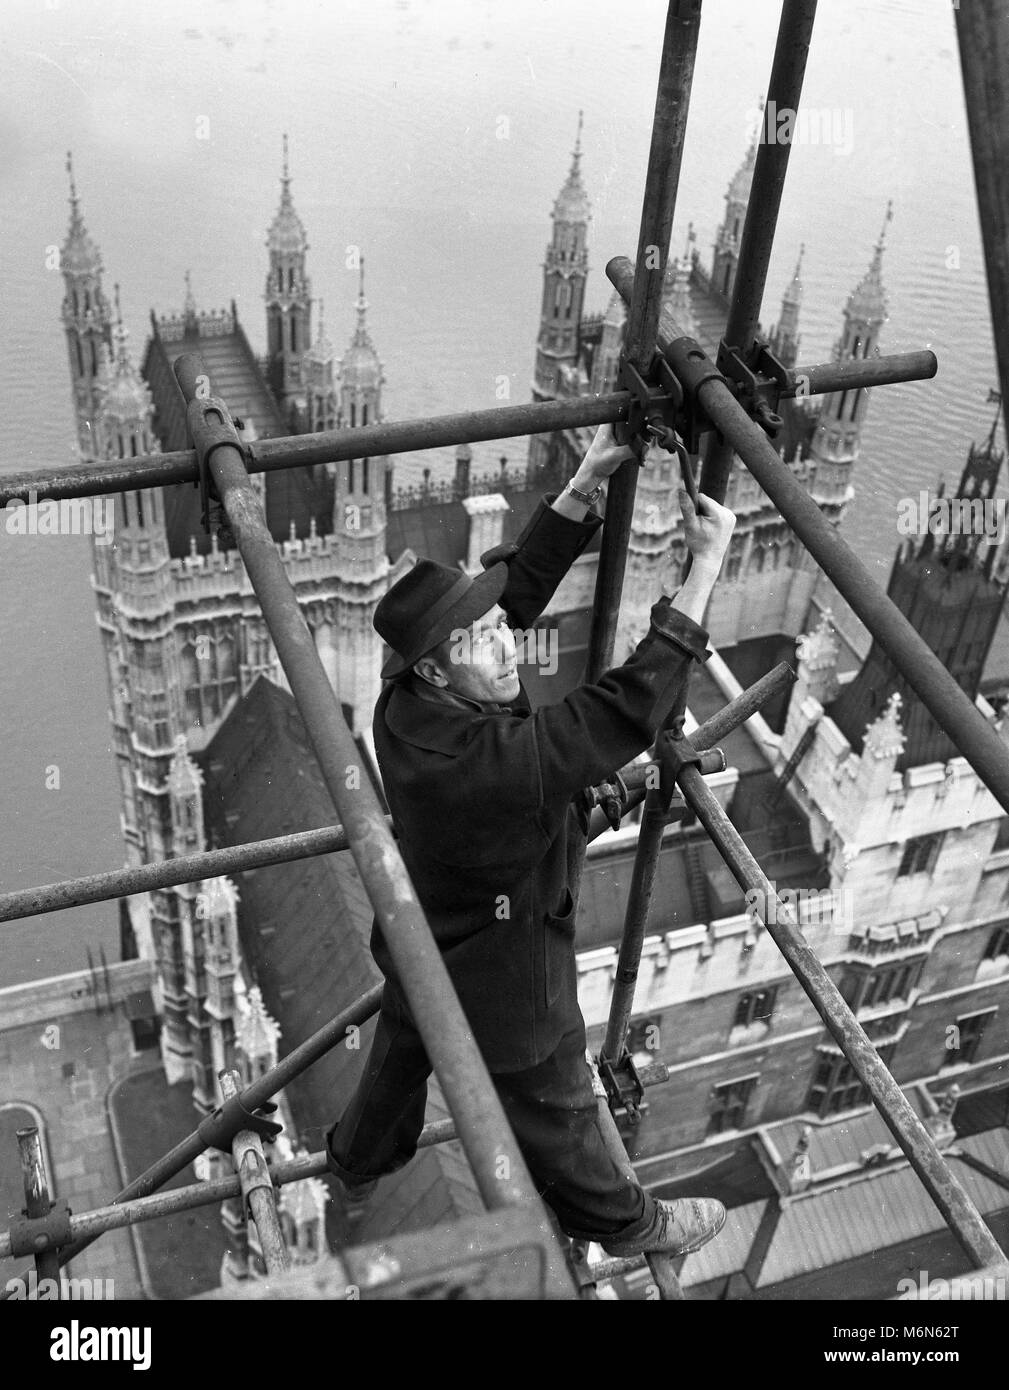 Construction worker erecting scaffolding on the 'Big Ben' clock tower on the Houses of Parliament also called - Stock Image